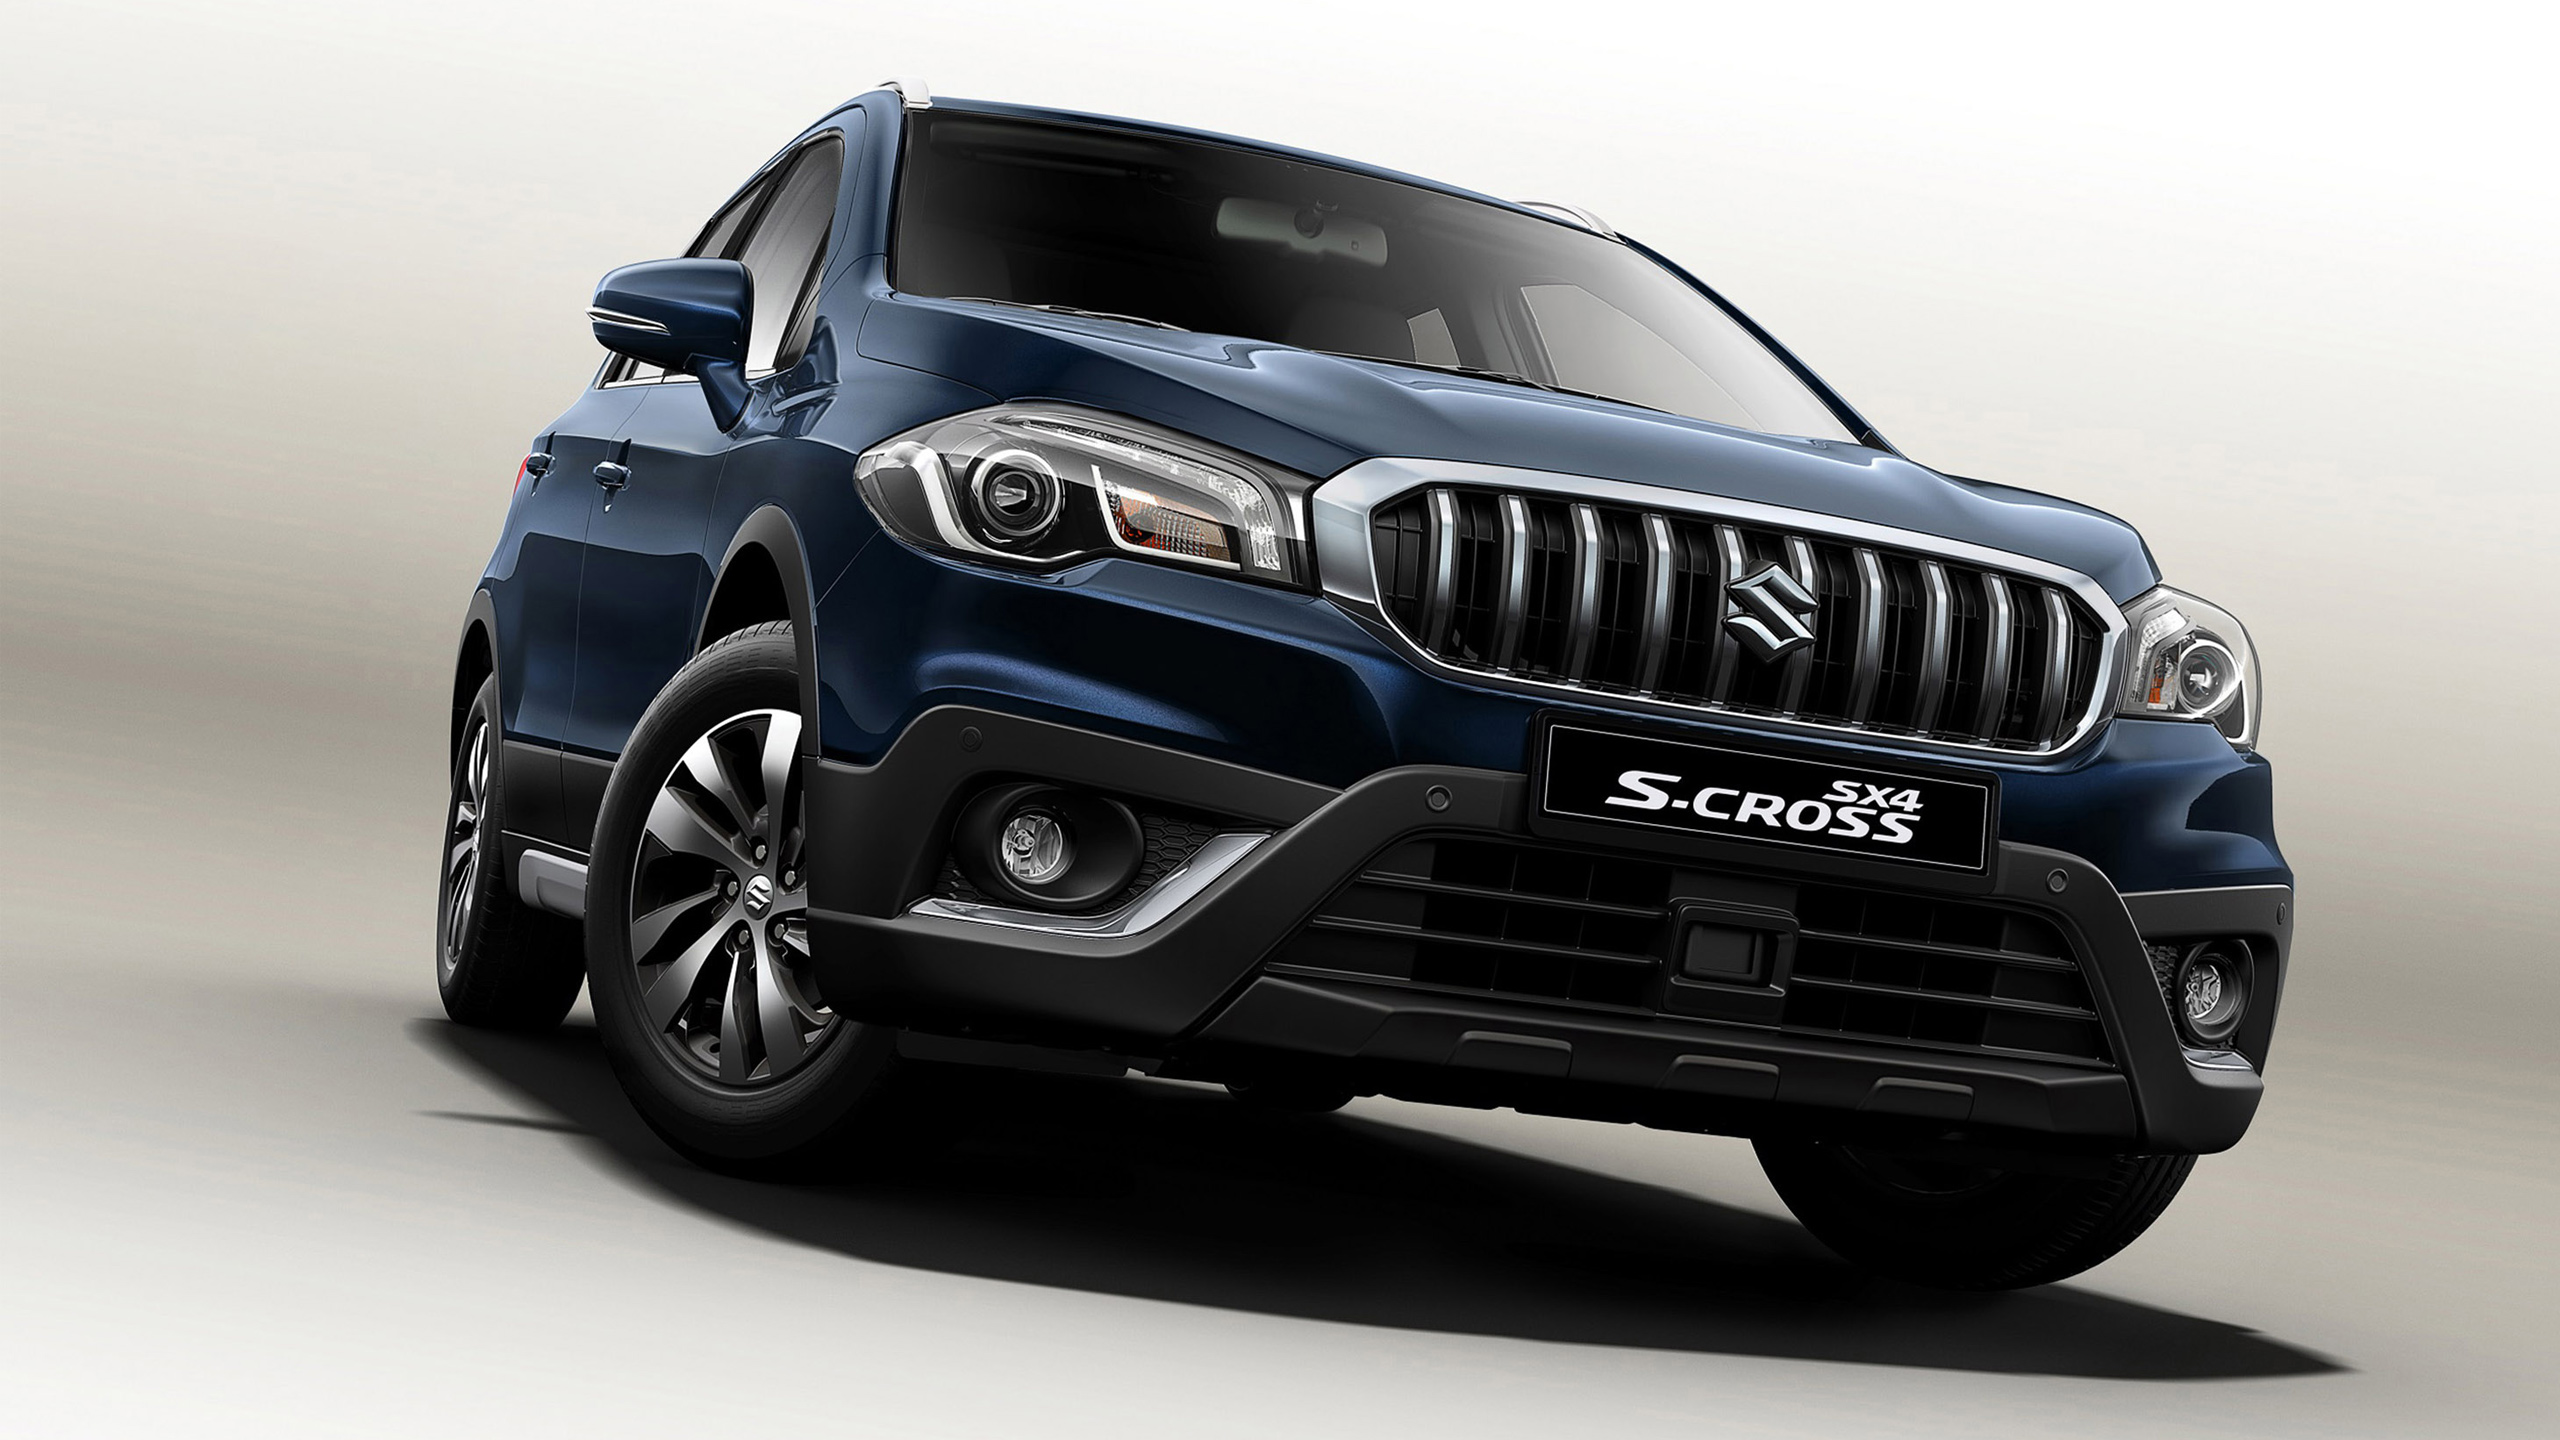 2017 Suzuki Ignis S Cross Wallpaper Hd Car Wallpapers Id 6864